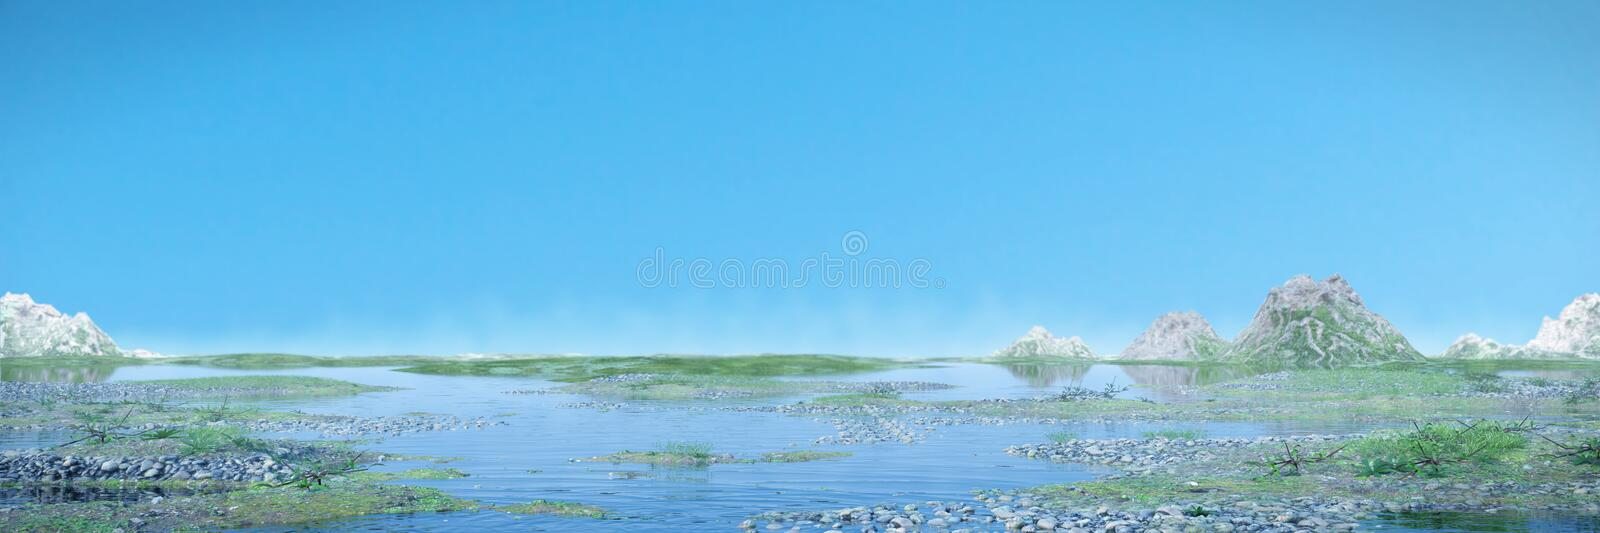 Beautiful landscape with blue sky and calm water, banner. Scenic watery landscape with low crawling fog, 3d illustration panorama royalty free illustration